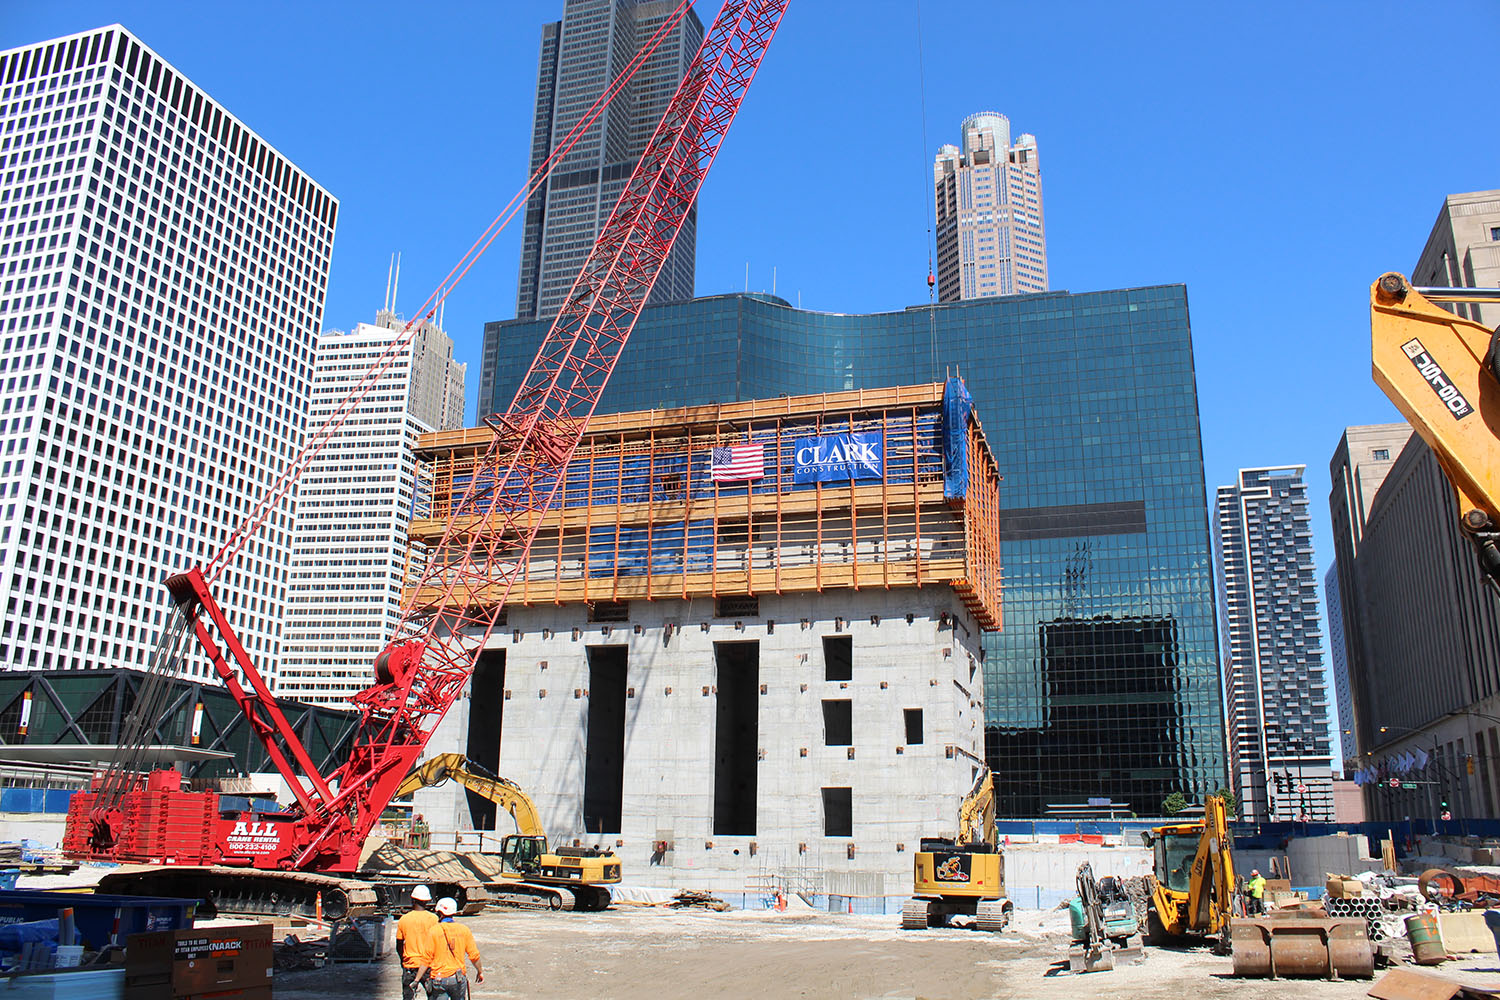 Construction Progress at Union Station Tower. Image Courtesy of Jack Crawford